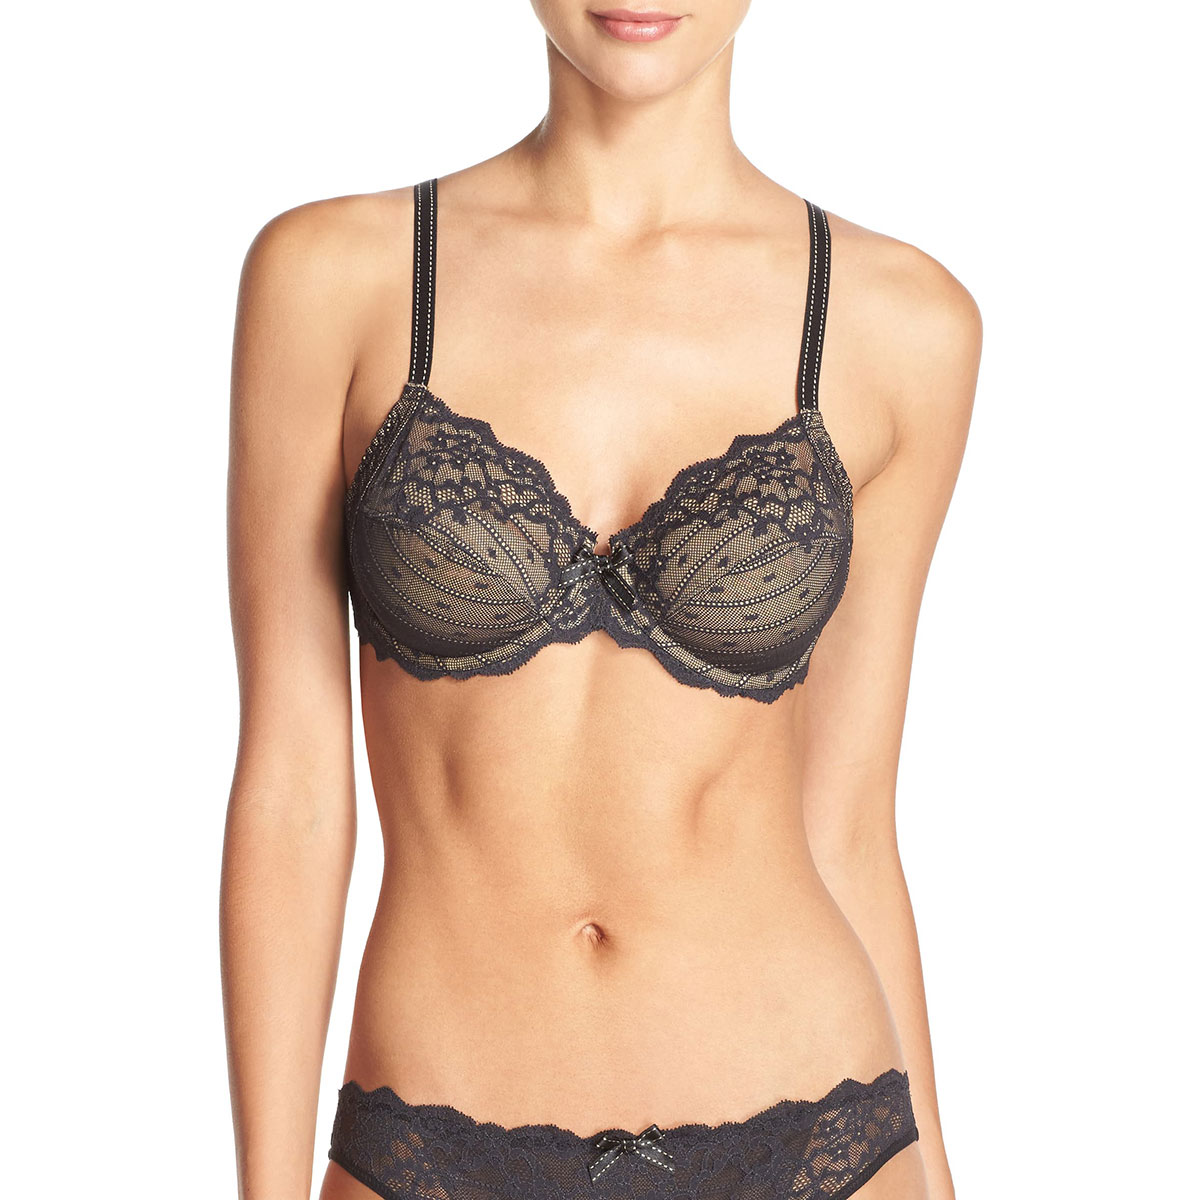 Chantelle Lingerie Rive Gauche Full Coverage Unlined